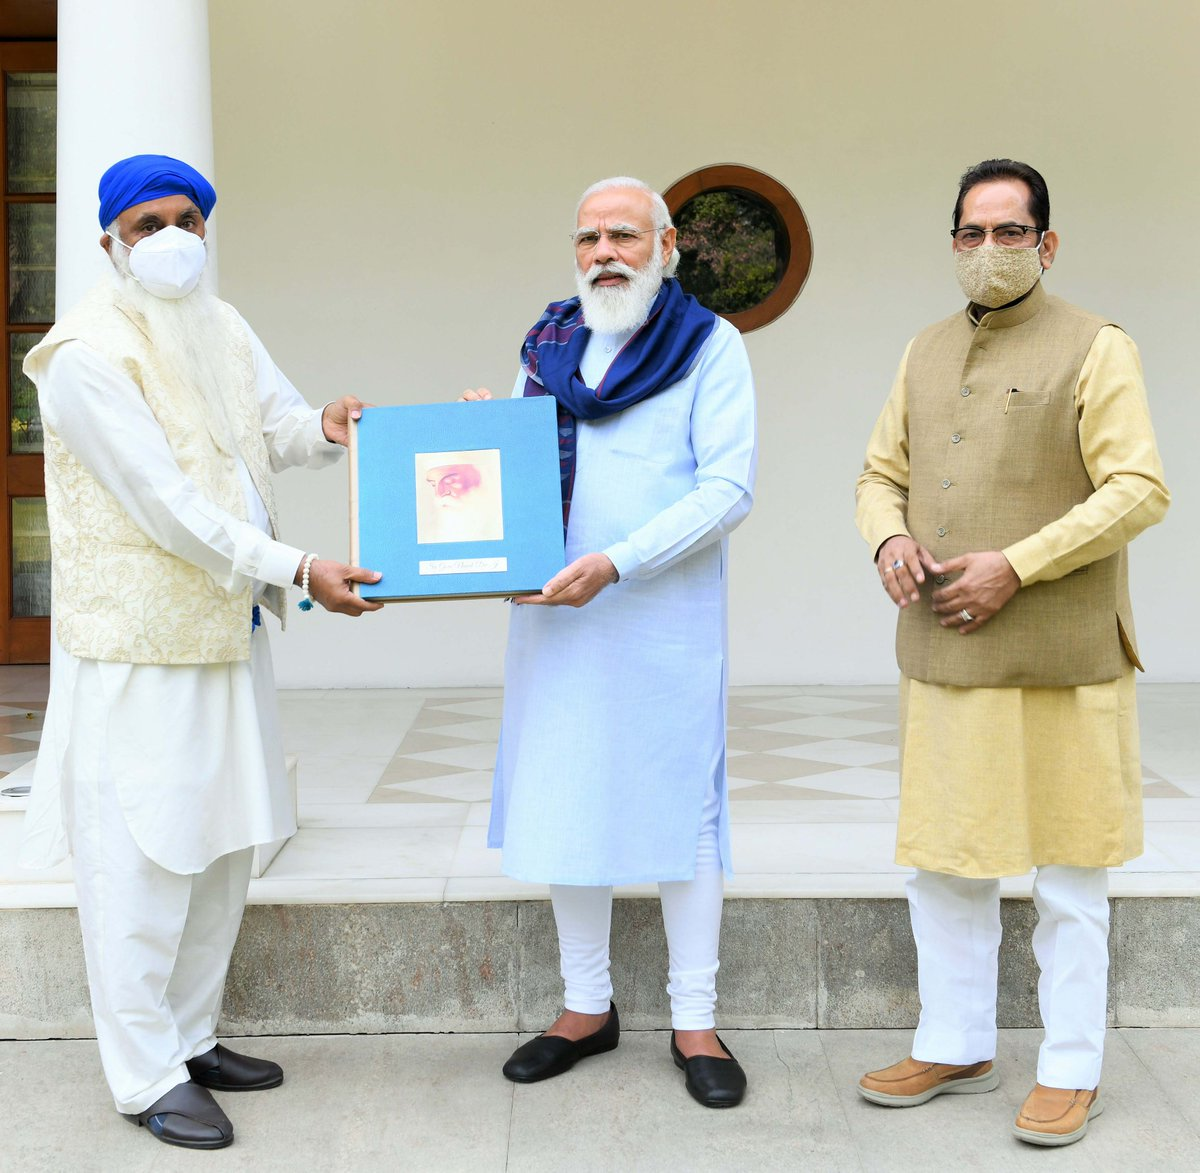 Released a book on the life and ideals of Sri Guru Nanak Dev Ji. The book has been penned by Kirpal Singh Ji, who is based in Chandigarh.